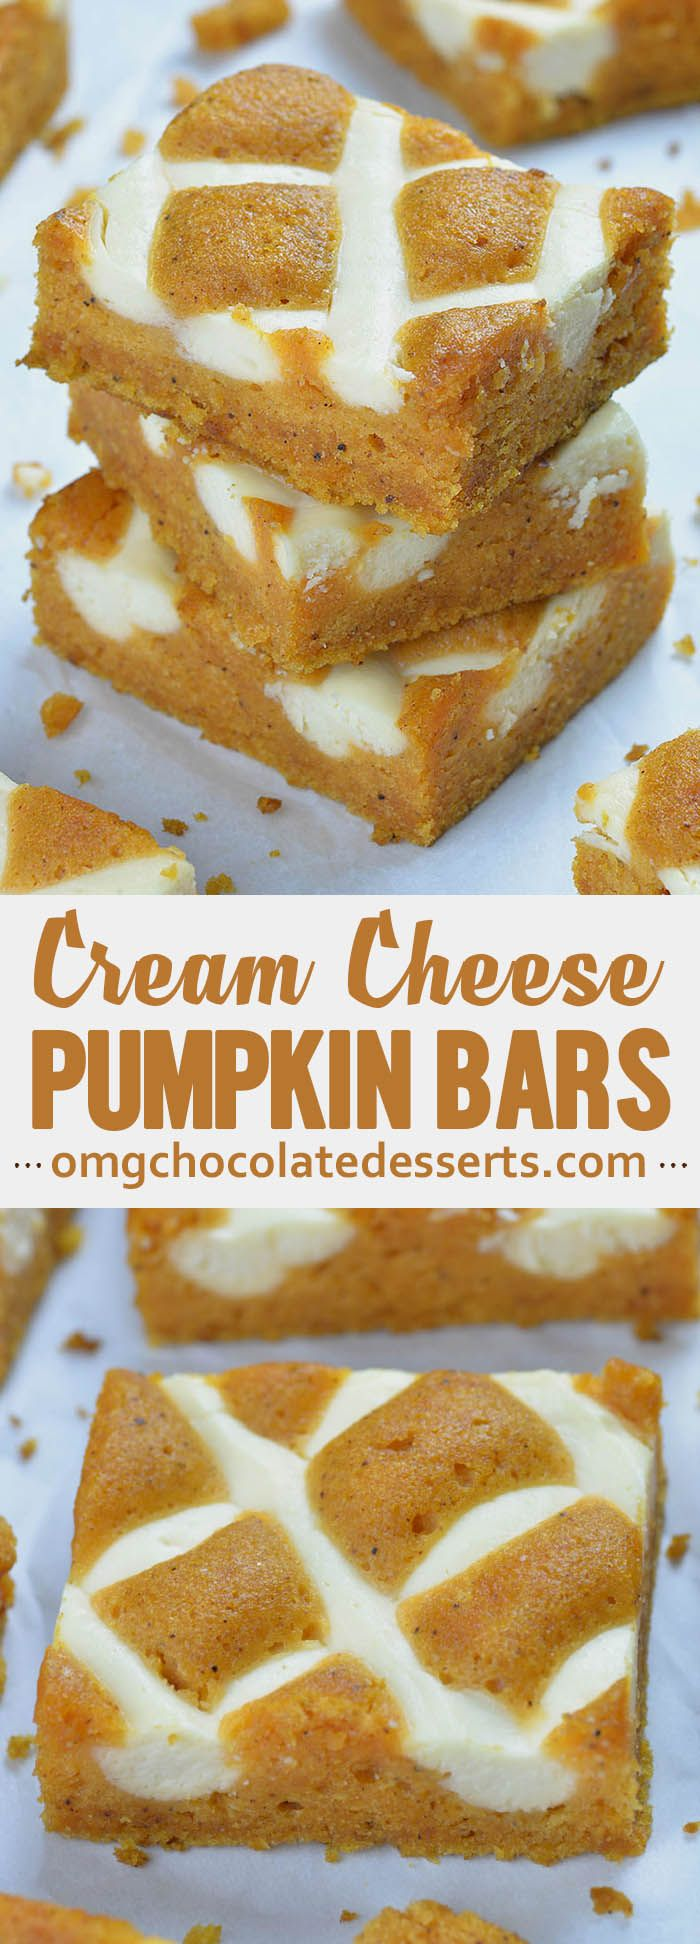 Pumpkin Bars with Cream Cheese #fallfoods